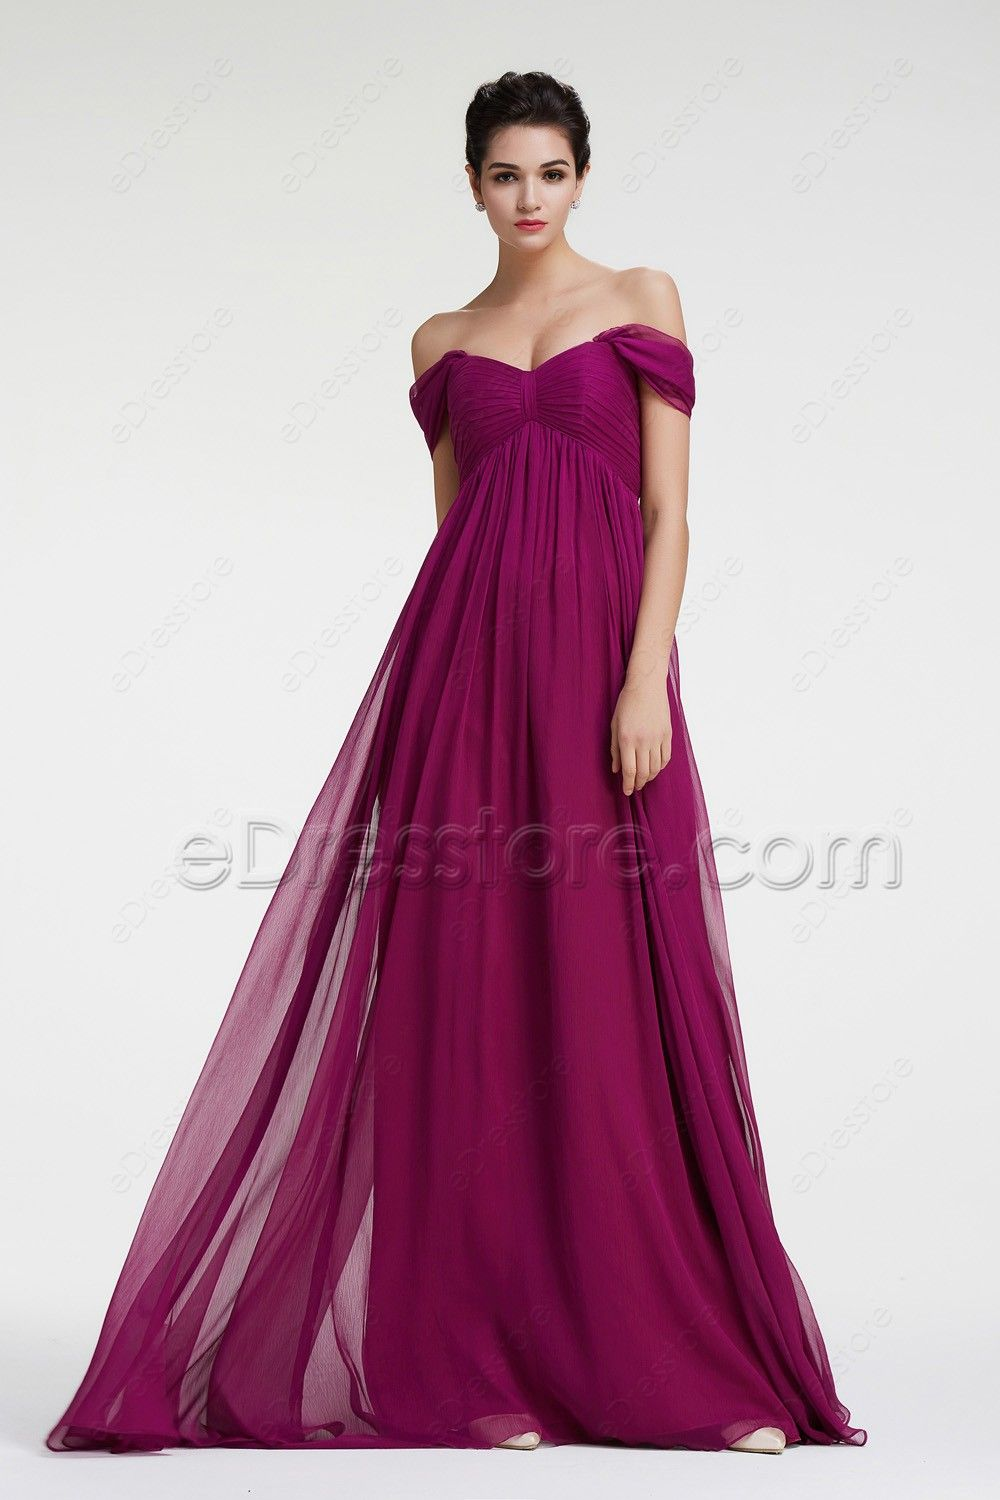 9ef865b241d5a The magenta bridesmaid dress features sweetheart neckline with off the  shoulder, pleated empire waist is maternity friendly, A Line skirt with  floor length.